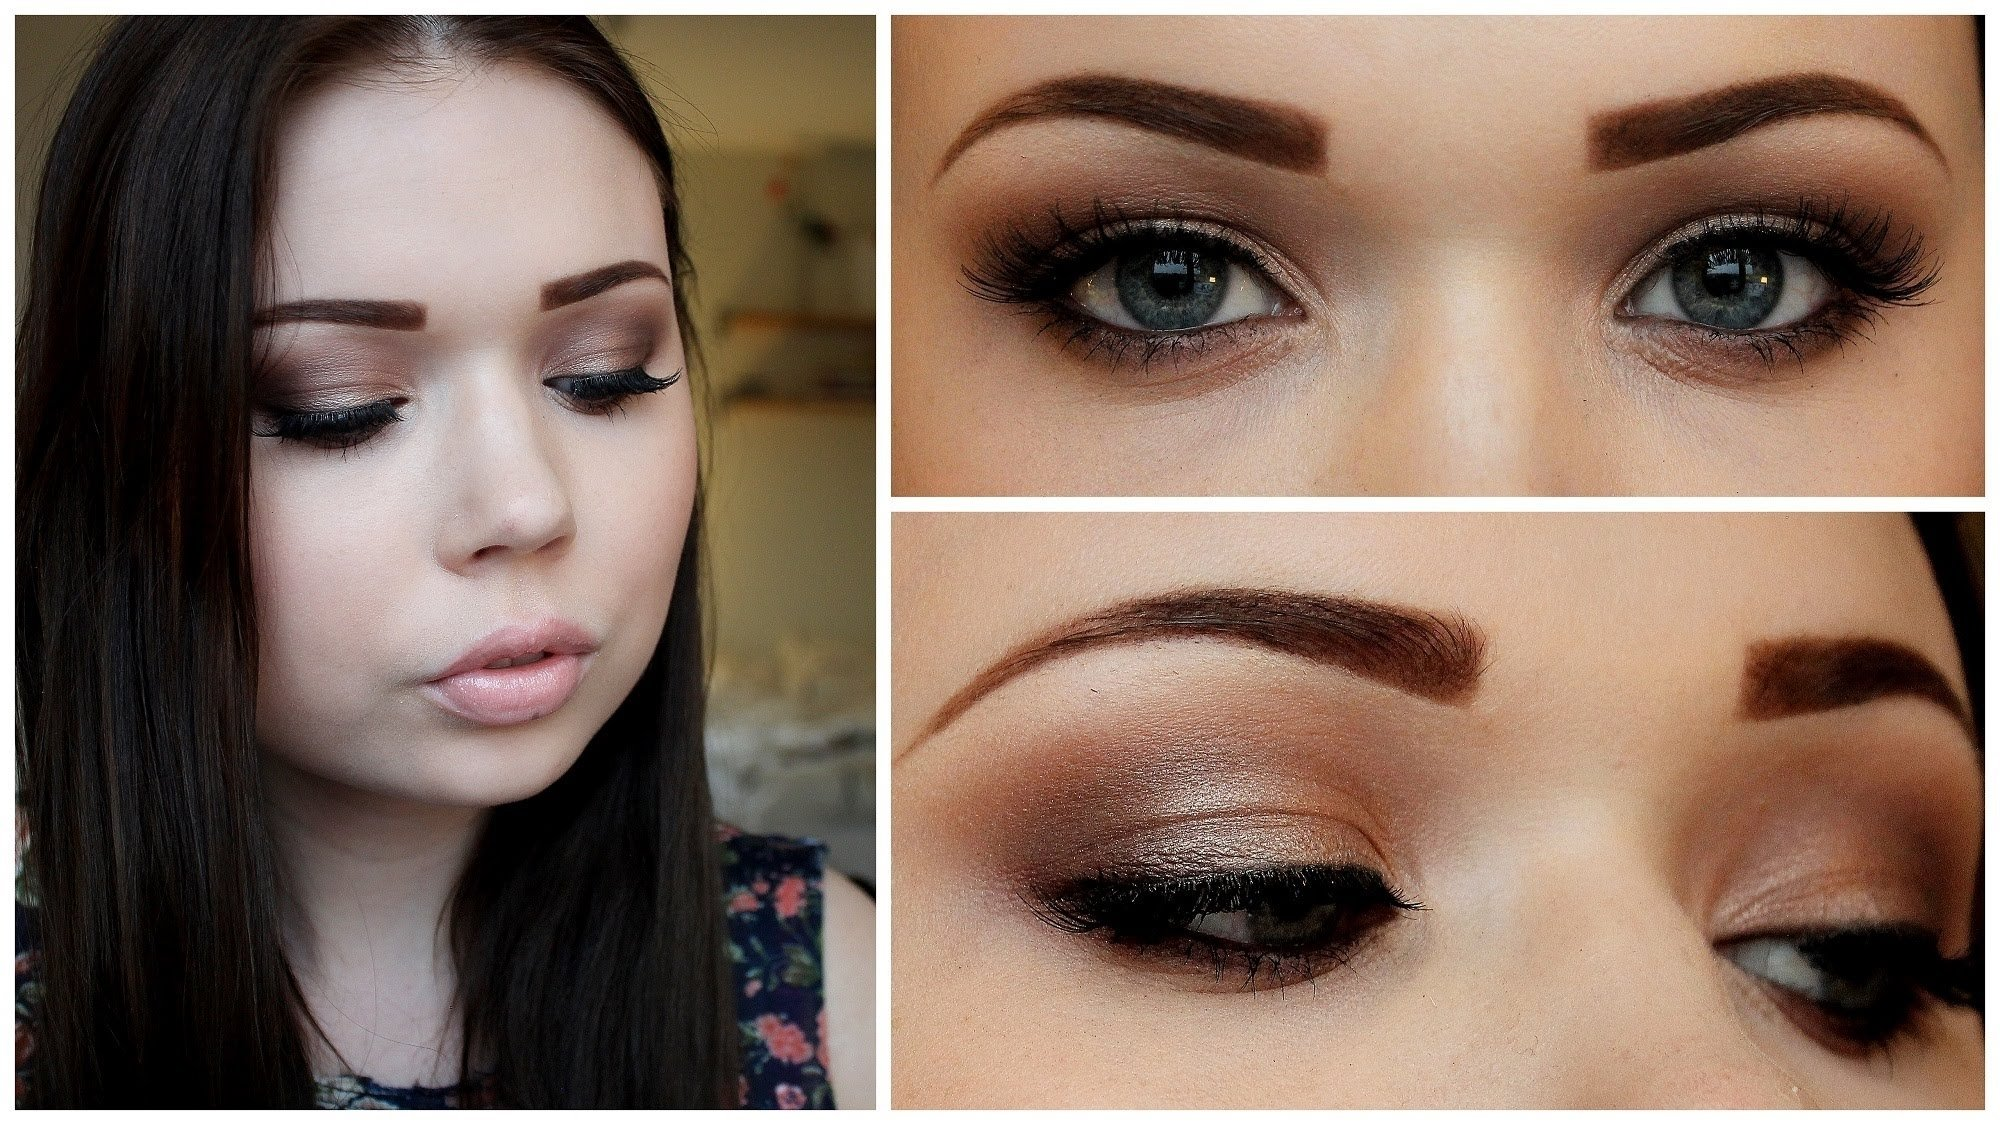 10 Perfect Prom Makeup Ideas For Brown Eyes formal makeup ideas for brown eyes prom makeup tutorial brown